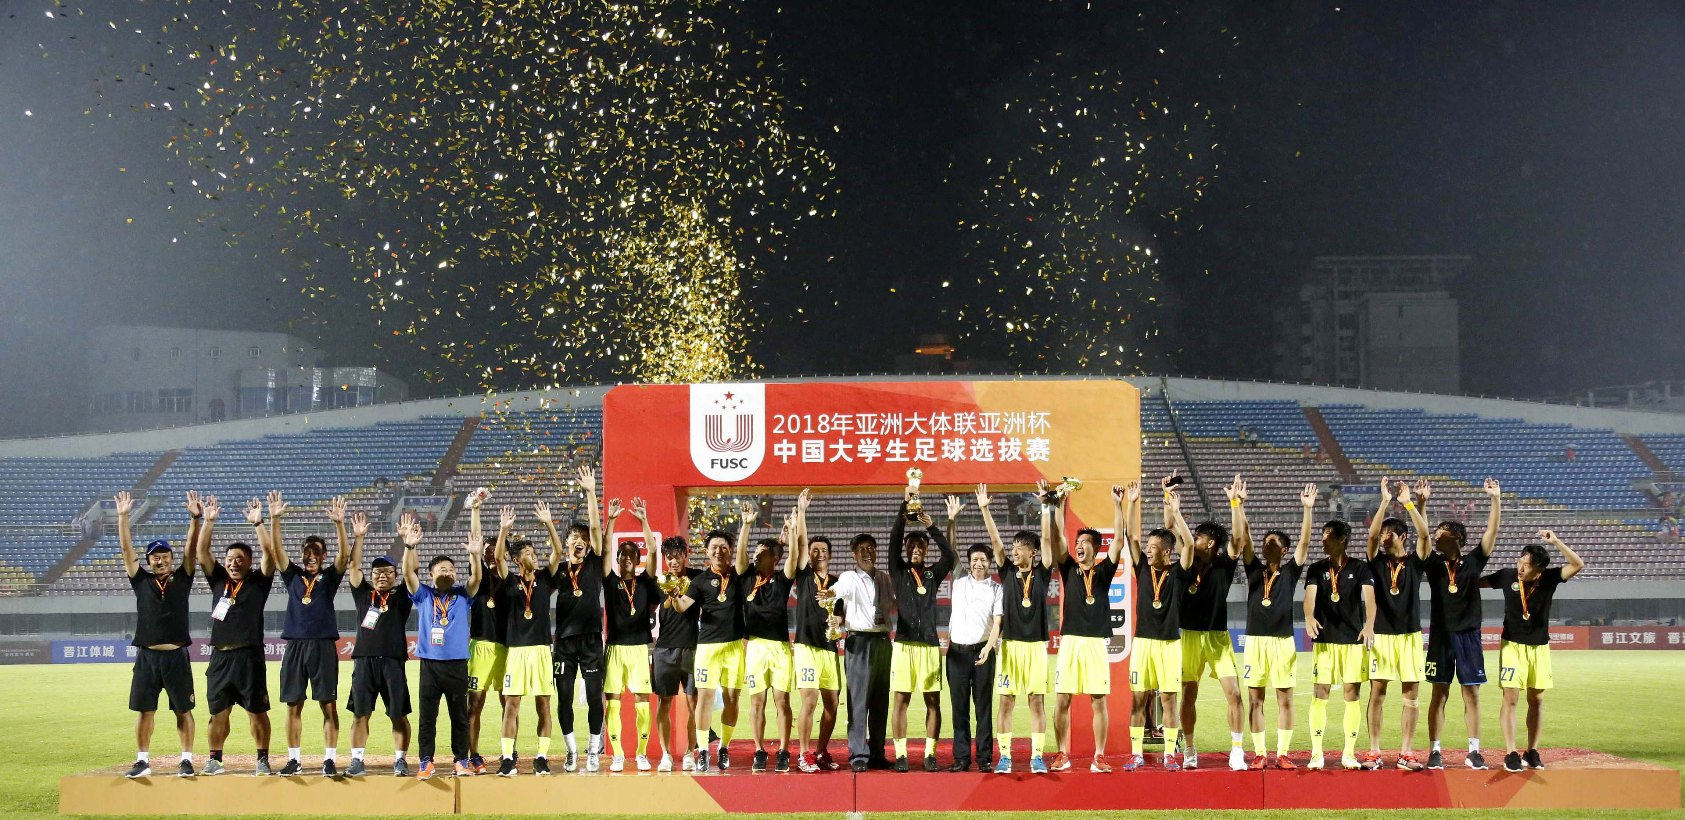 2018 AUSF Football Cup China Qualification ends